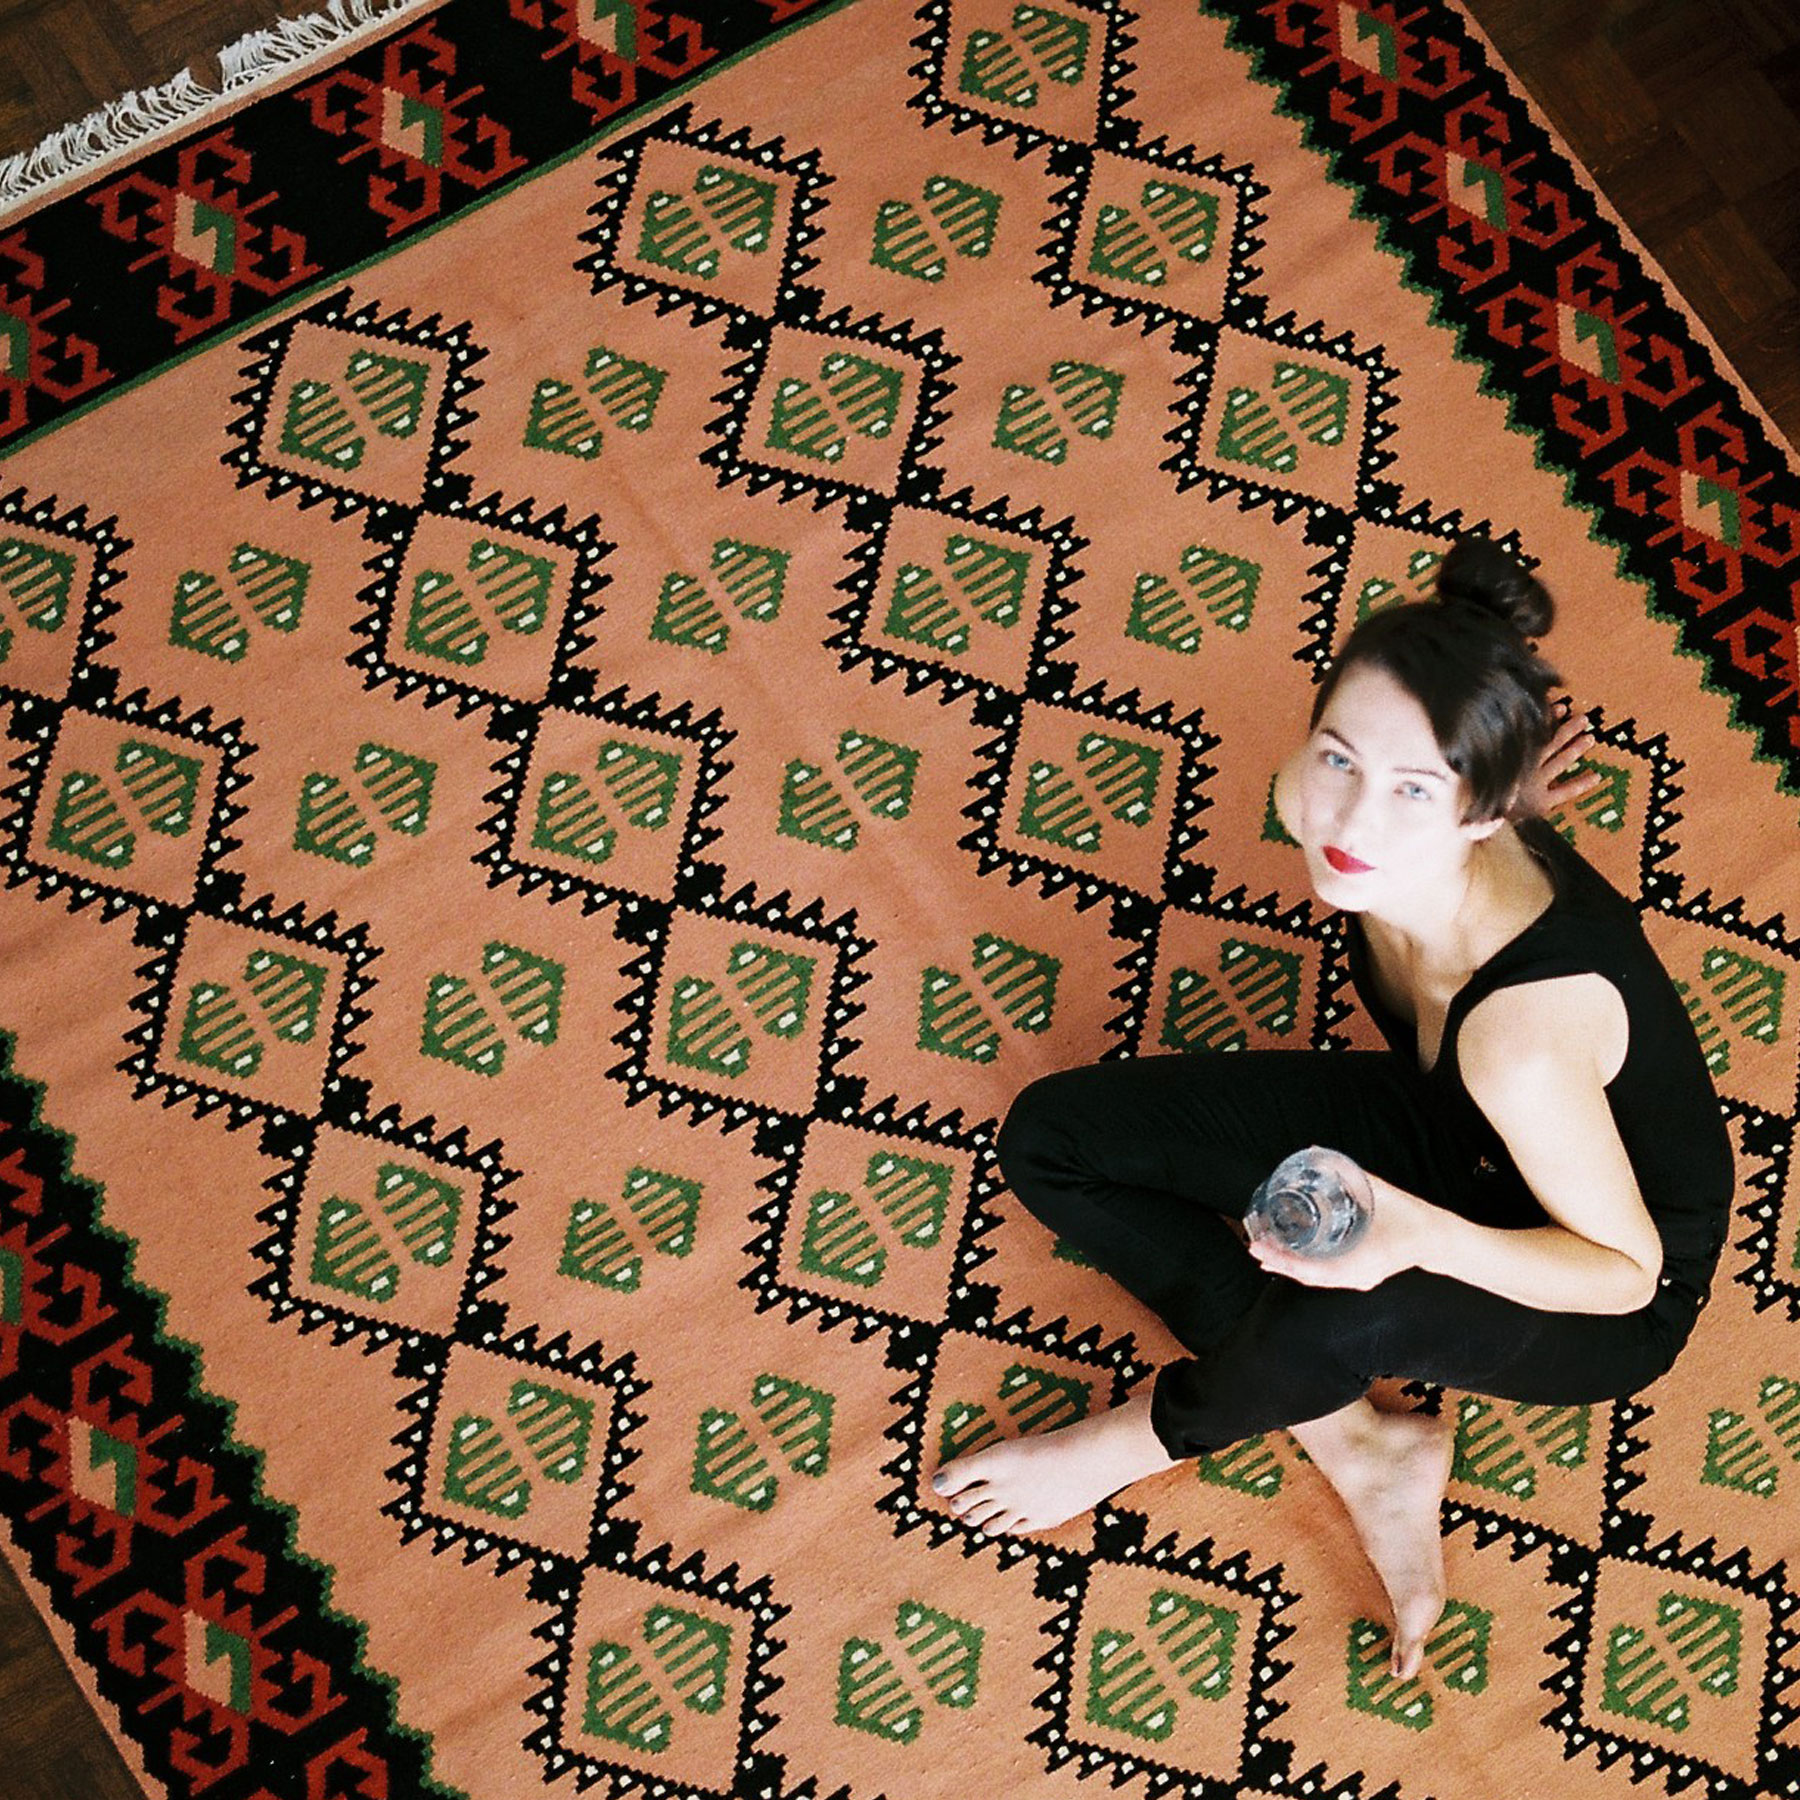 KOBEIAGI KILIMS LEJLA KILIM Kilim is a traditional hand-woven wool fabric that can be used as a rug, a blanket or a bed cover. It can also be a charming decoration for walls and windows. Created by Slovenian duo Kobeiagi Kilims.